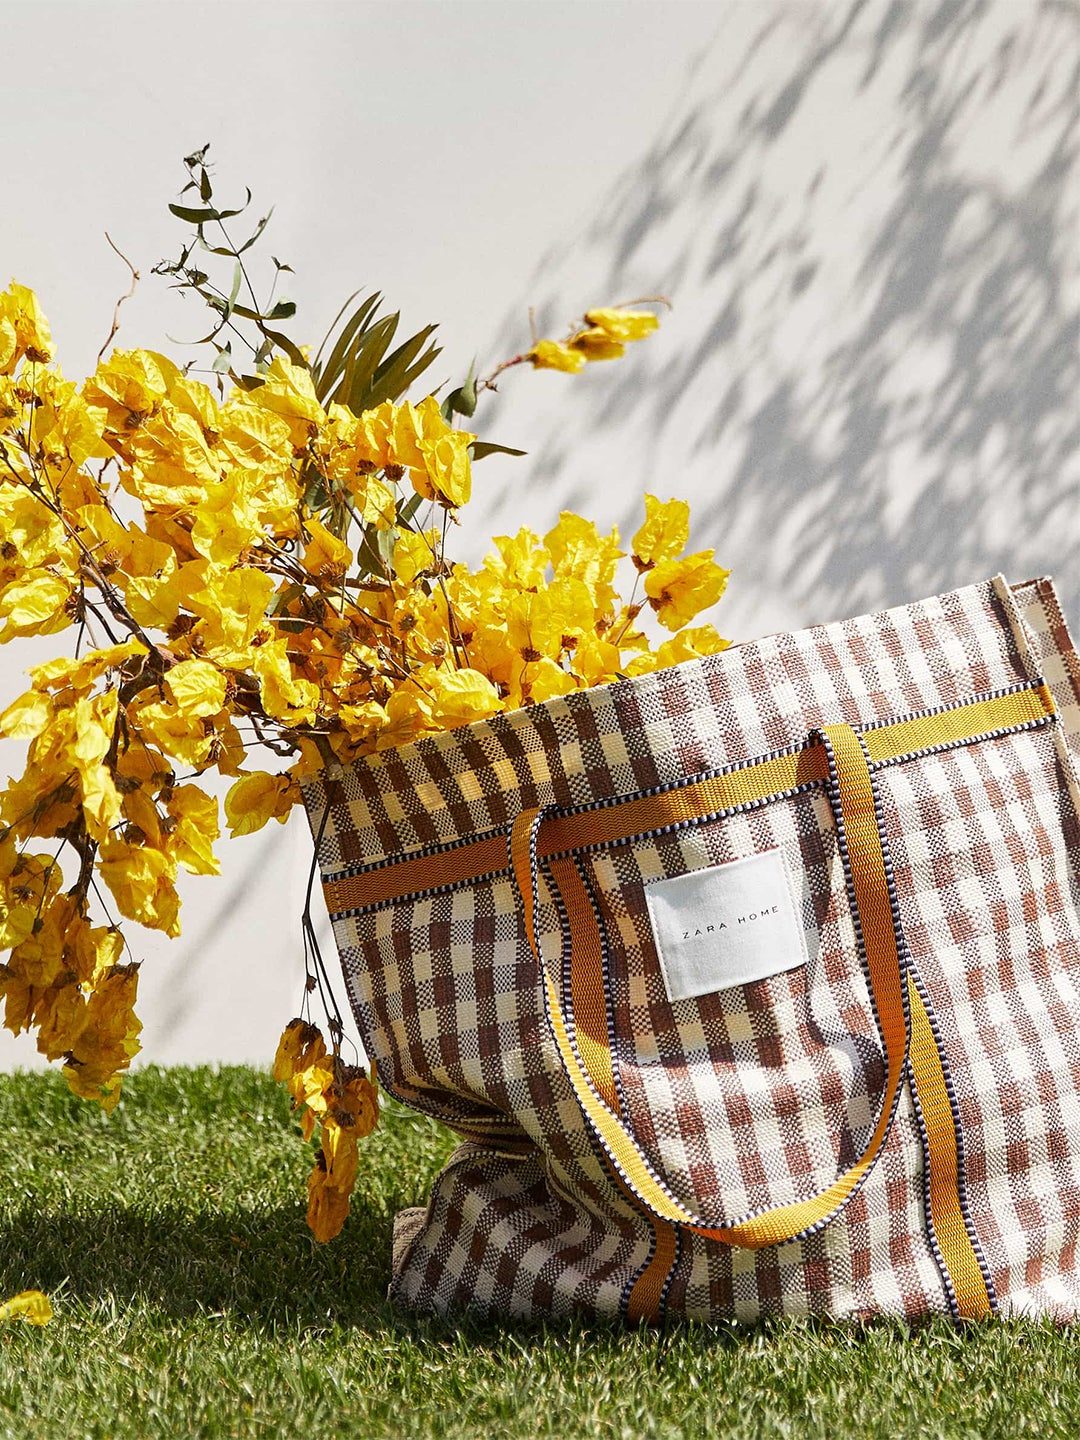 yellow flowers in a check bag